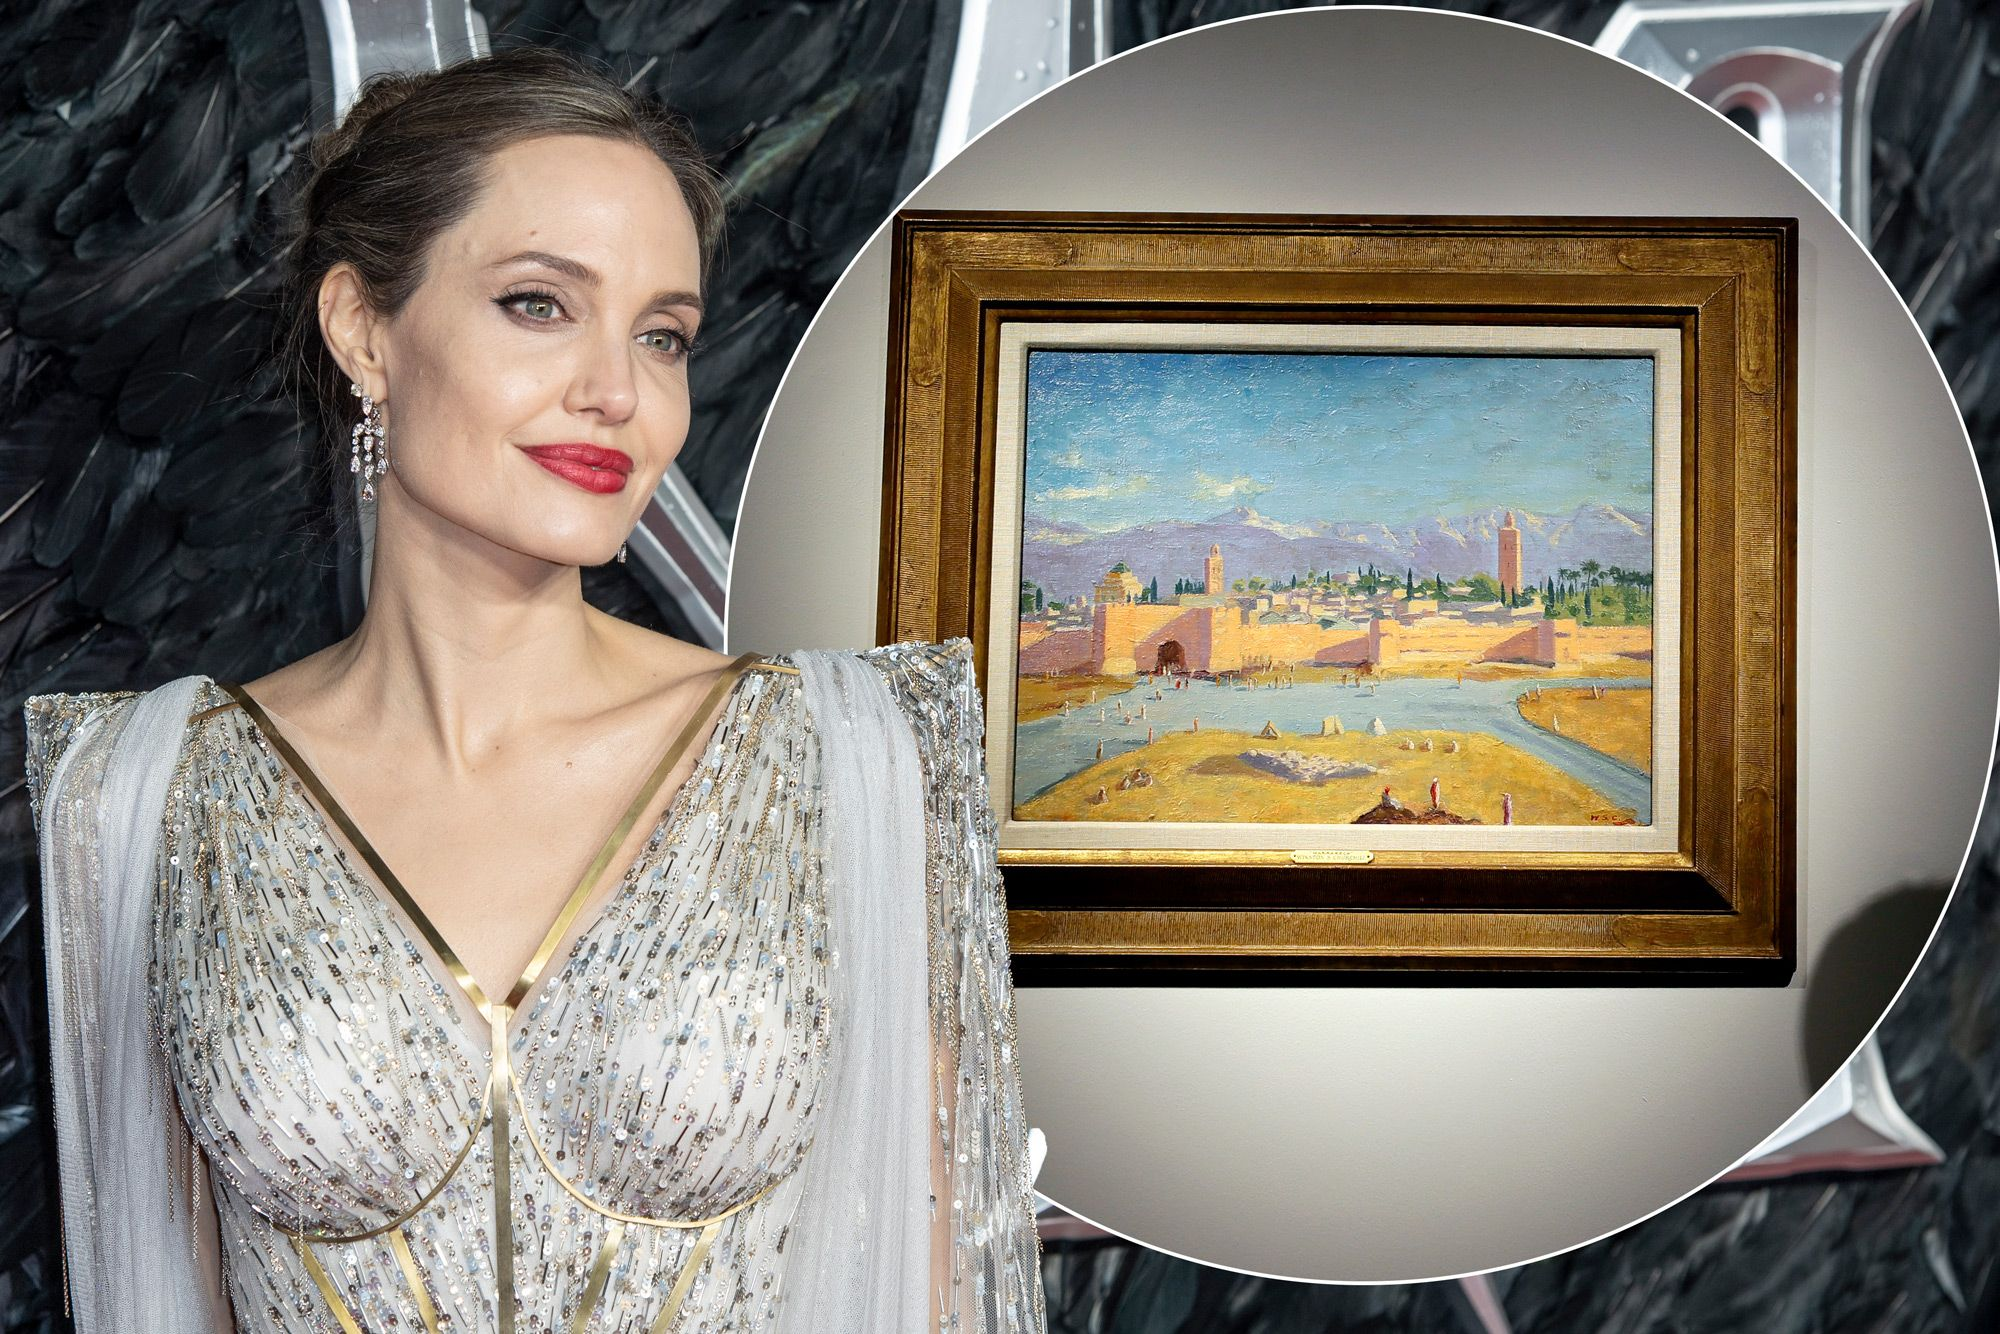 Angelina Jolie vend un tableau de Winston Churchill illustrant Marrakech